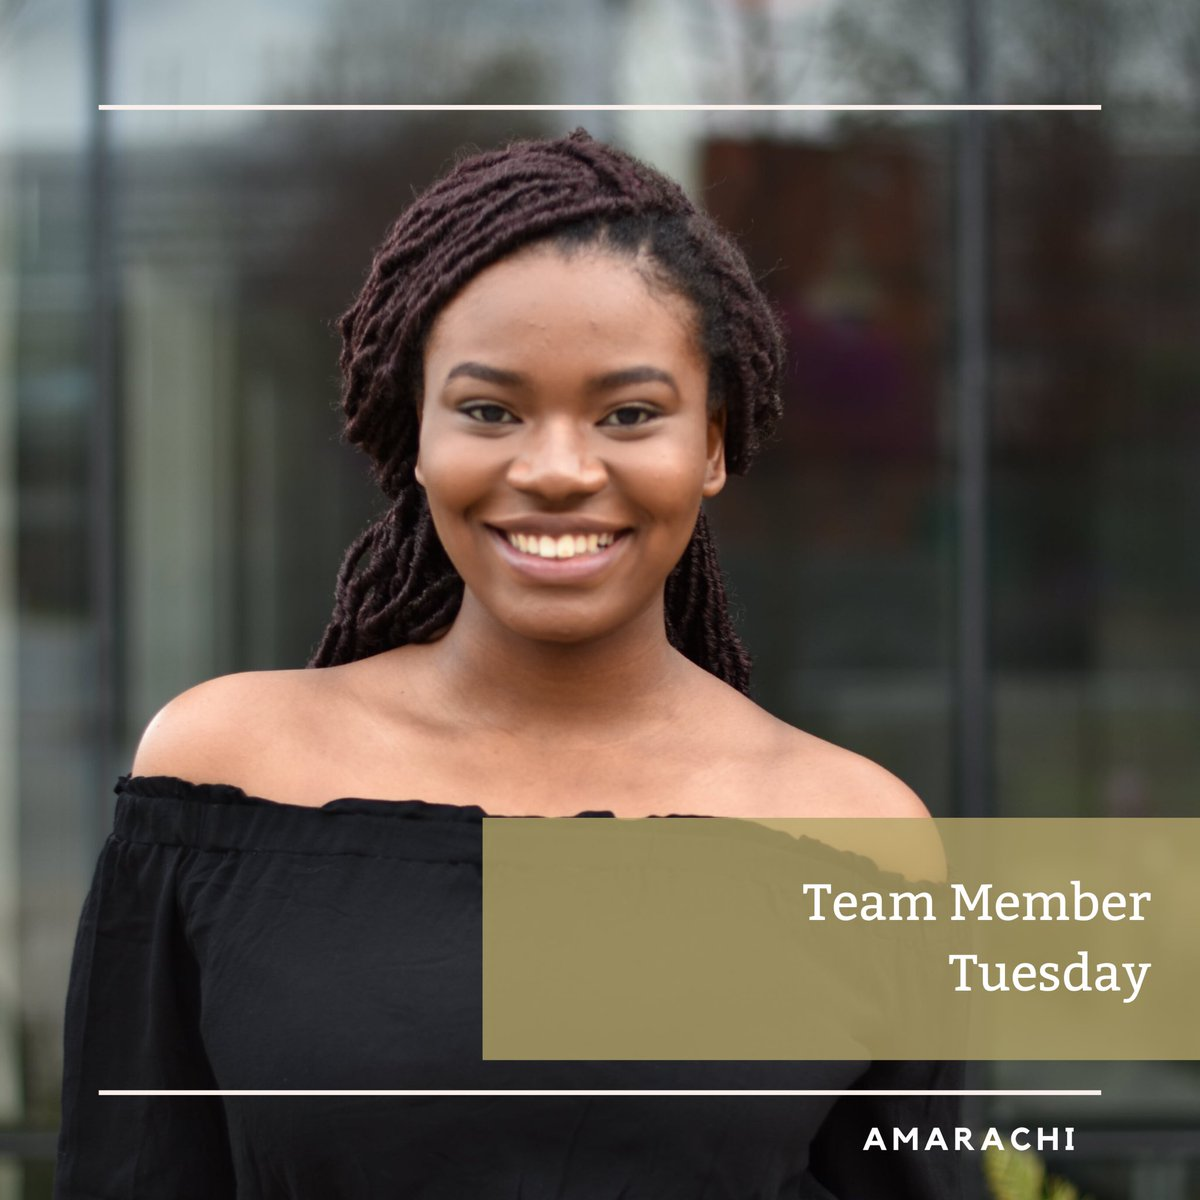 Say hello to this week's #teammembertuesday! Amarachi is part of the PCM sub team, &her role for the team is to build the battery controller model. Her favorite part is seeing her code work & hearing the battery contractors close. ⚡️  #teammembertuesday #PCM #ecocar #womeninstem https://t.co/eK9oQKluZs